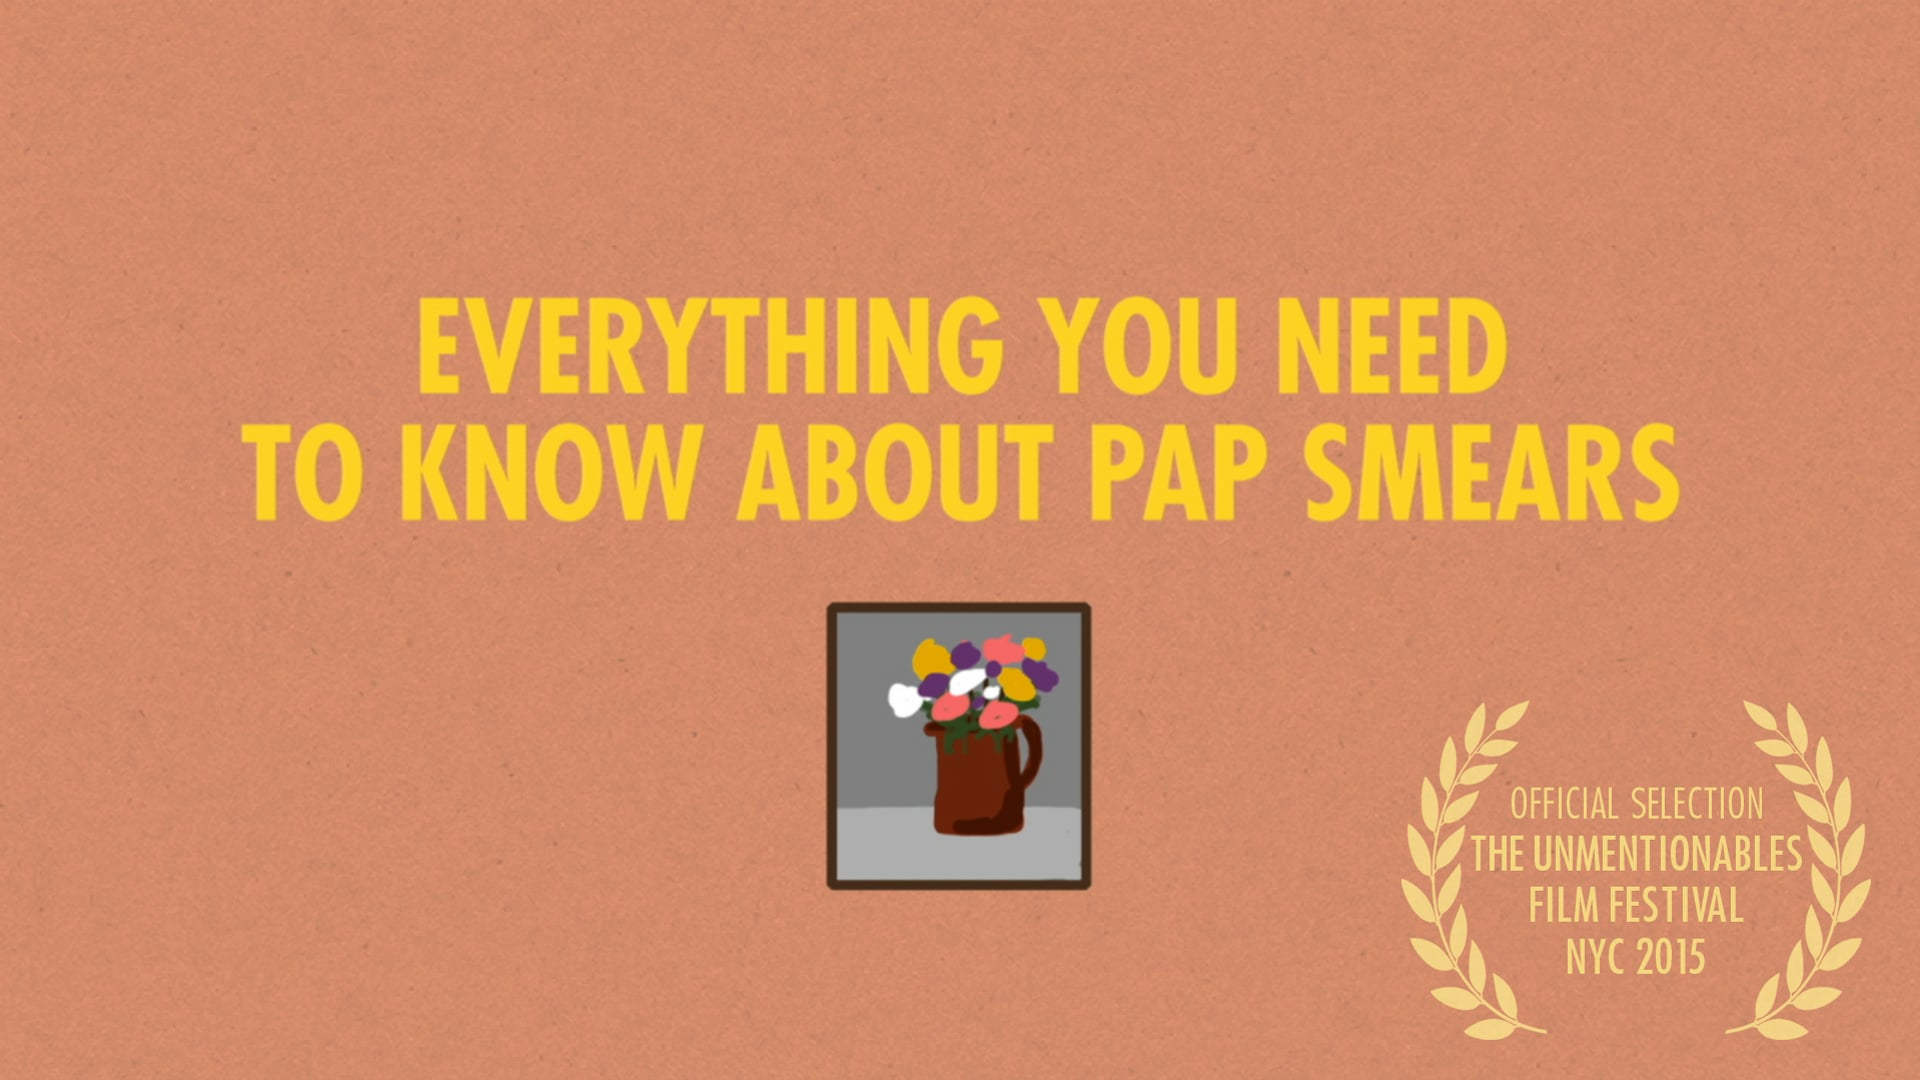 Everything You Need To Know About Pap Smears